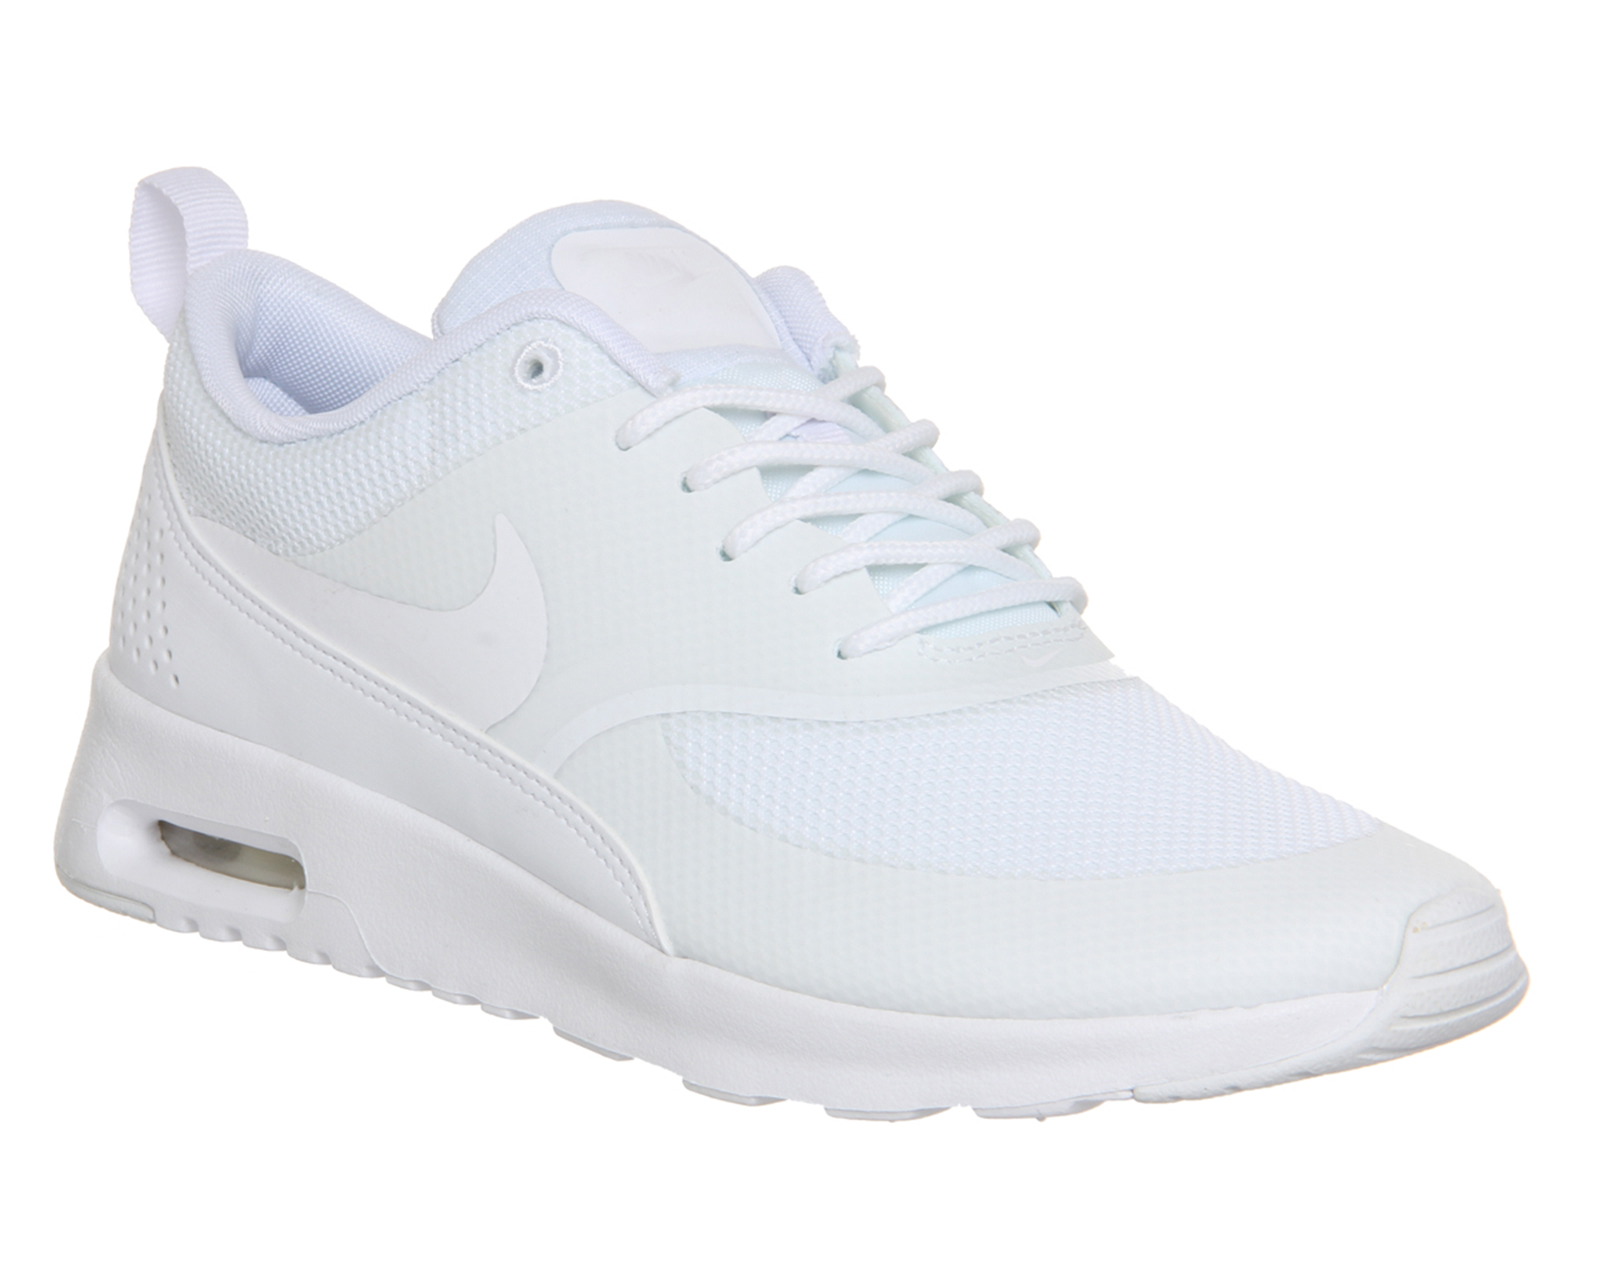 nike air max thea low top sneakers in white lyst. Black Bedroom Furniture Sets. Home Design Ideas